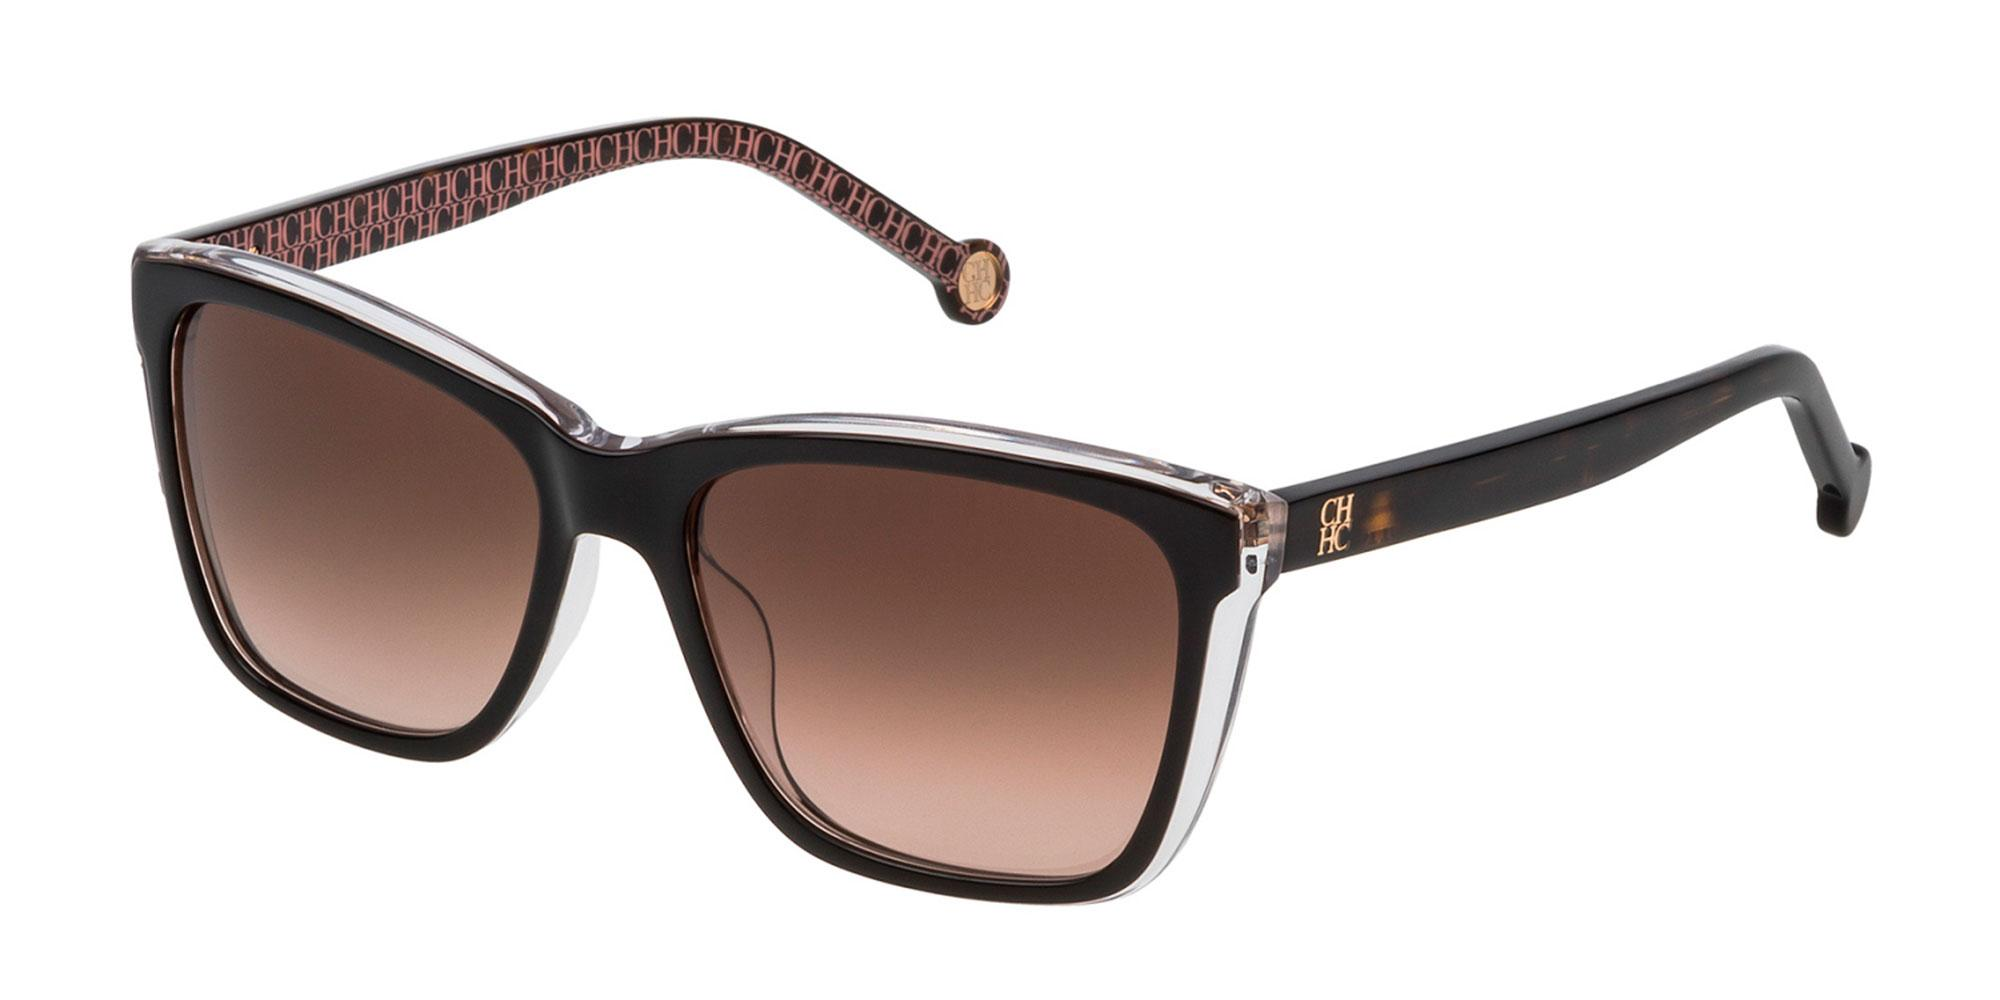 09W2 SHE695 Sunglasses, CH Carolina Herrera